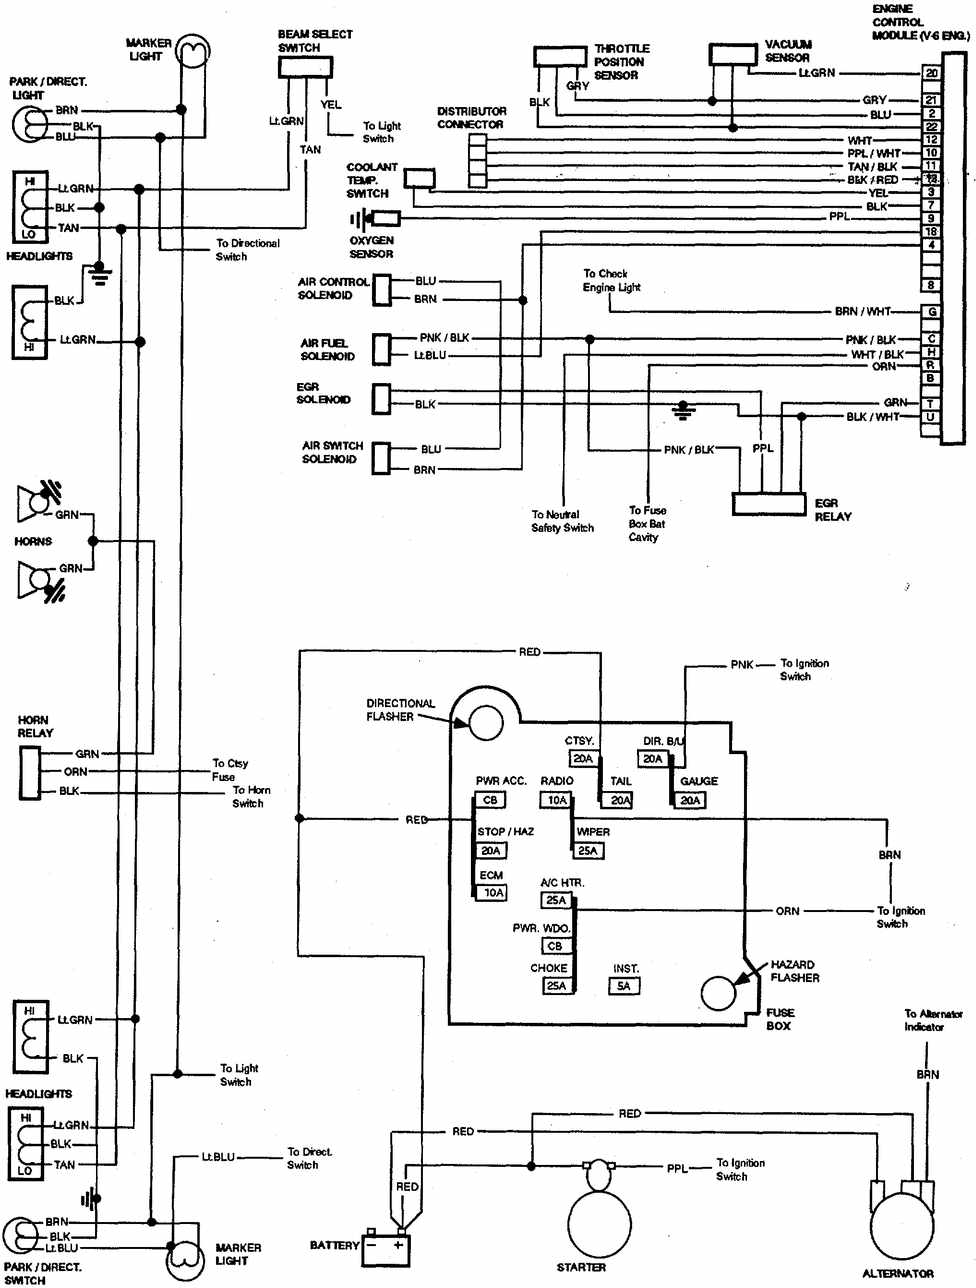 wiring diagram radio for 1988 oldsmobile wiring diagram radio for 1996 oldsmobile